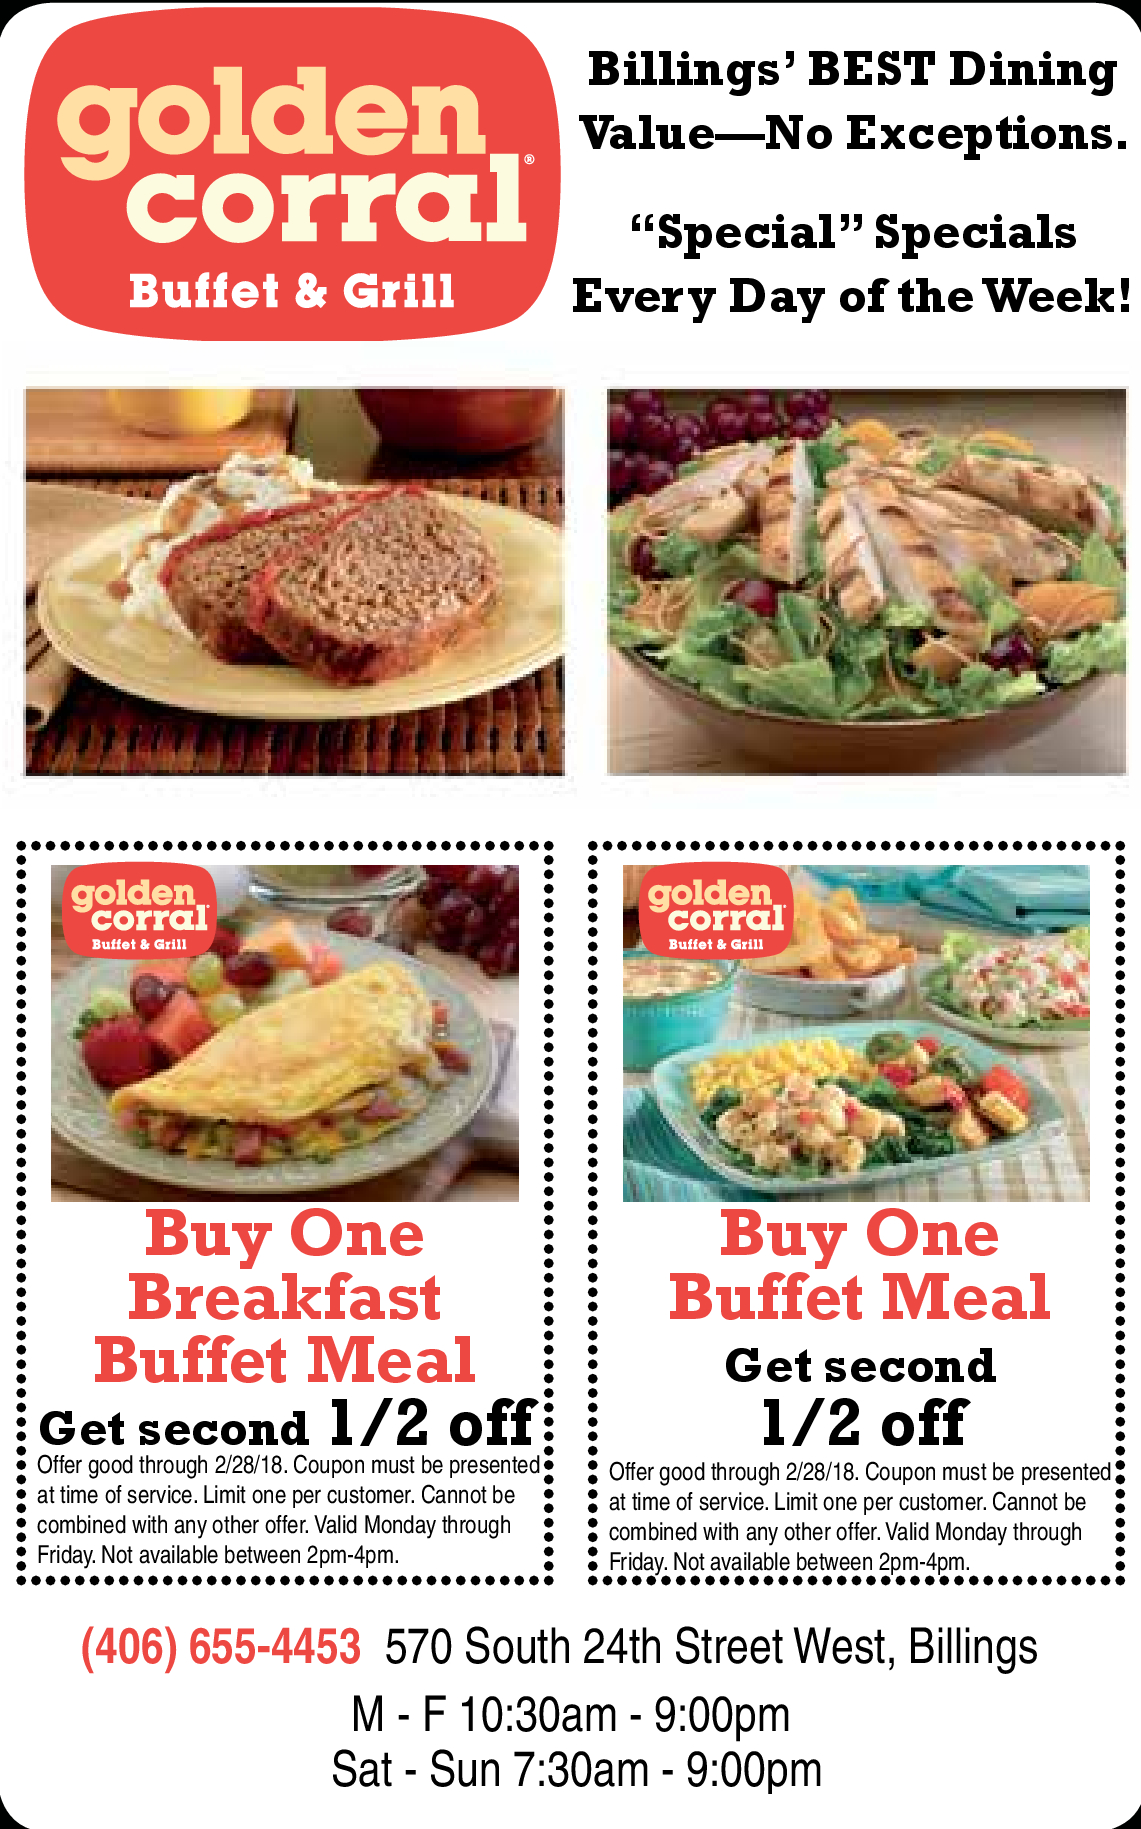 Printable Local Coupons, Free Restaurant Coupons Online - Hometown - Golden Corral Coupons Buy One Get One Free Printable